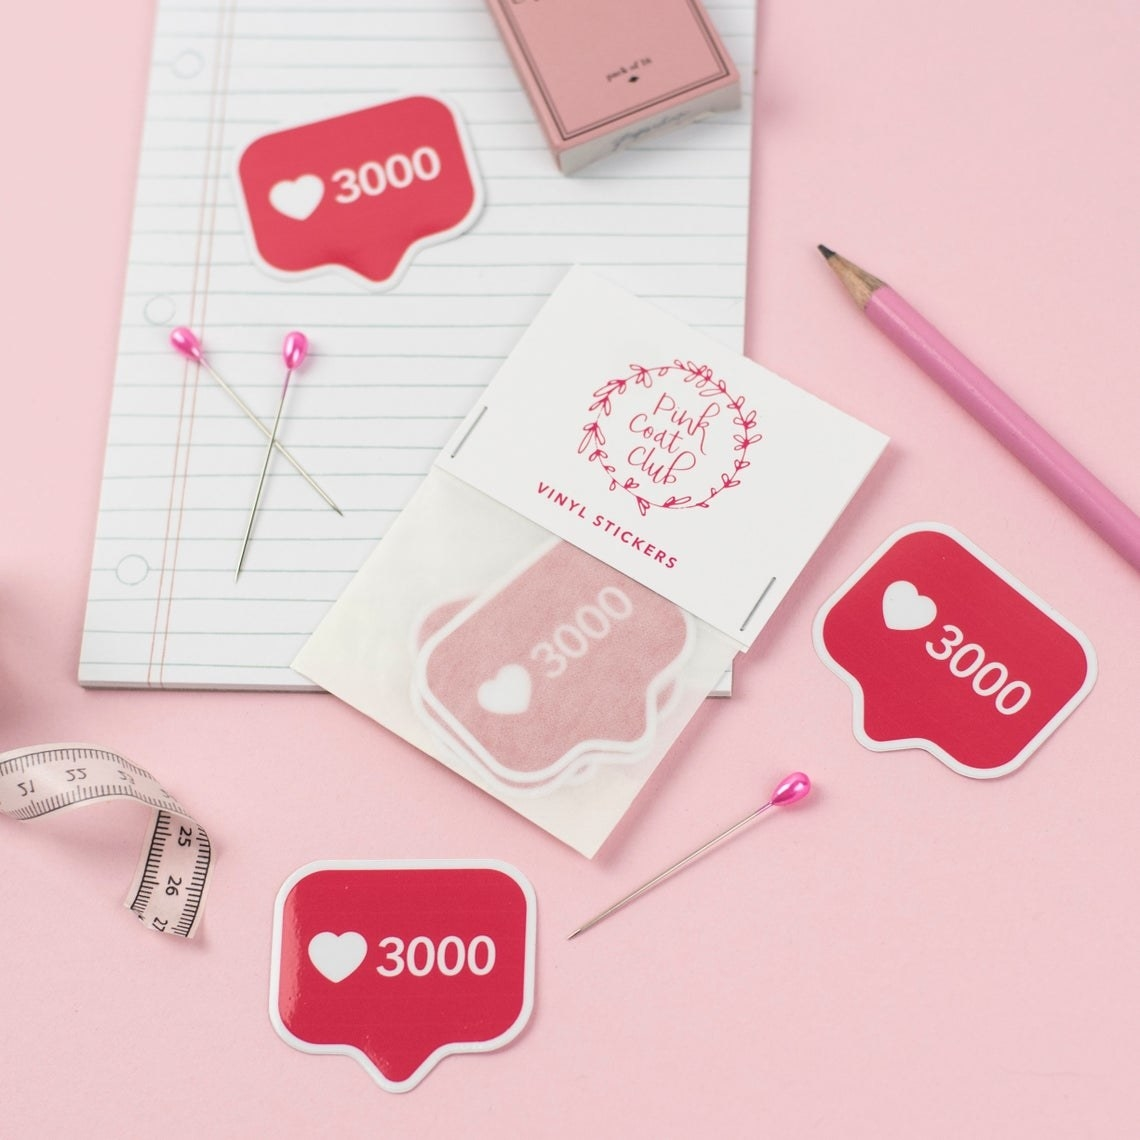 The stickers surrounded by a notepad, pencils, and pins